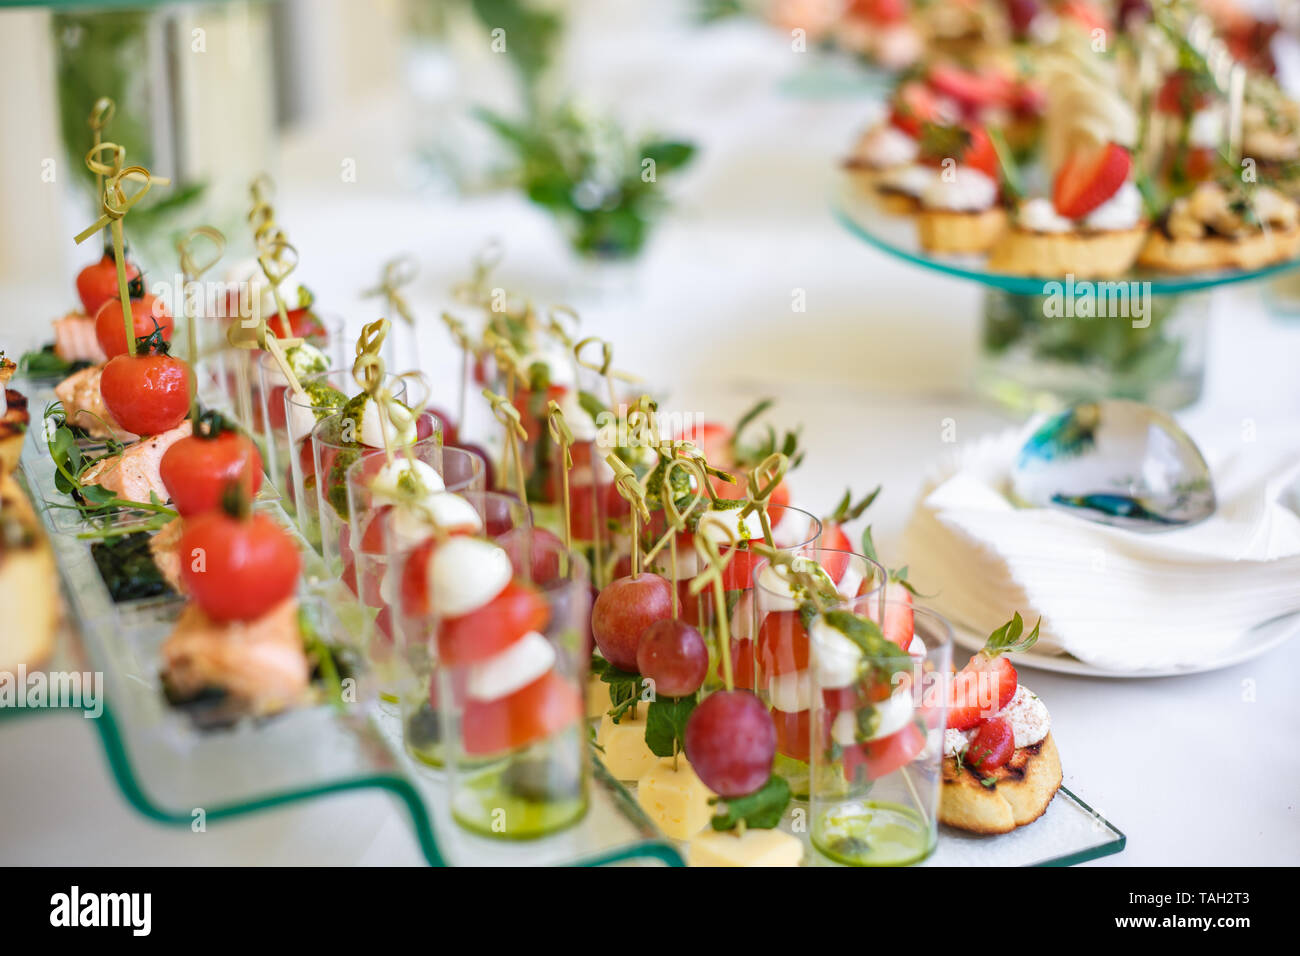 Canapés Wraps Canapes Sandwiches Stock Photos Canapes Sandwiches Stock Images